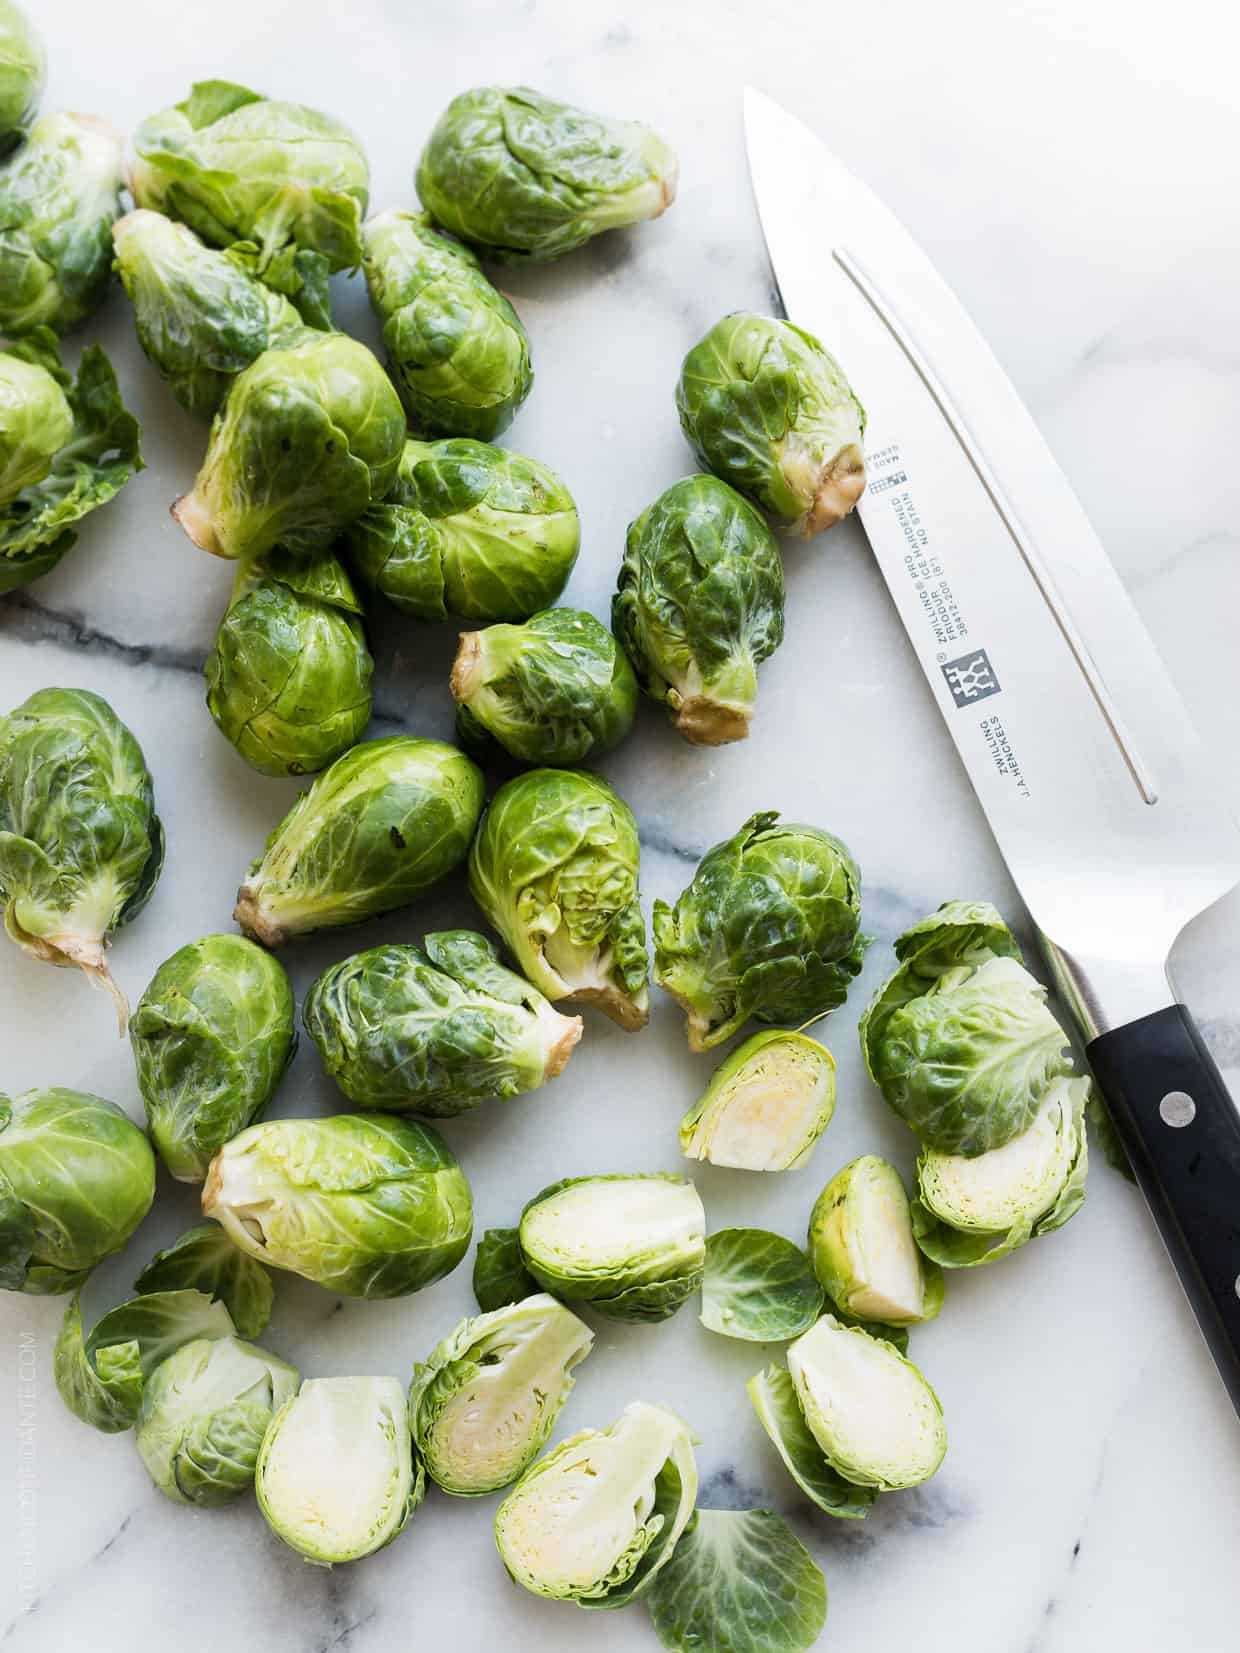 Brussels sprouts split in half on a marble surface alongside a chef's knife.